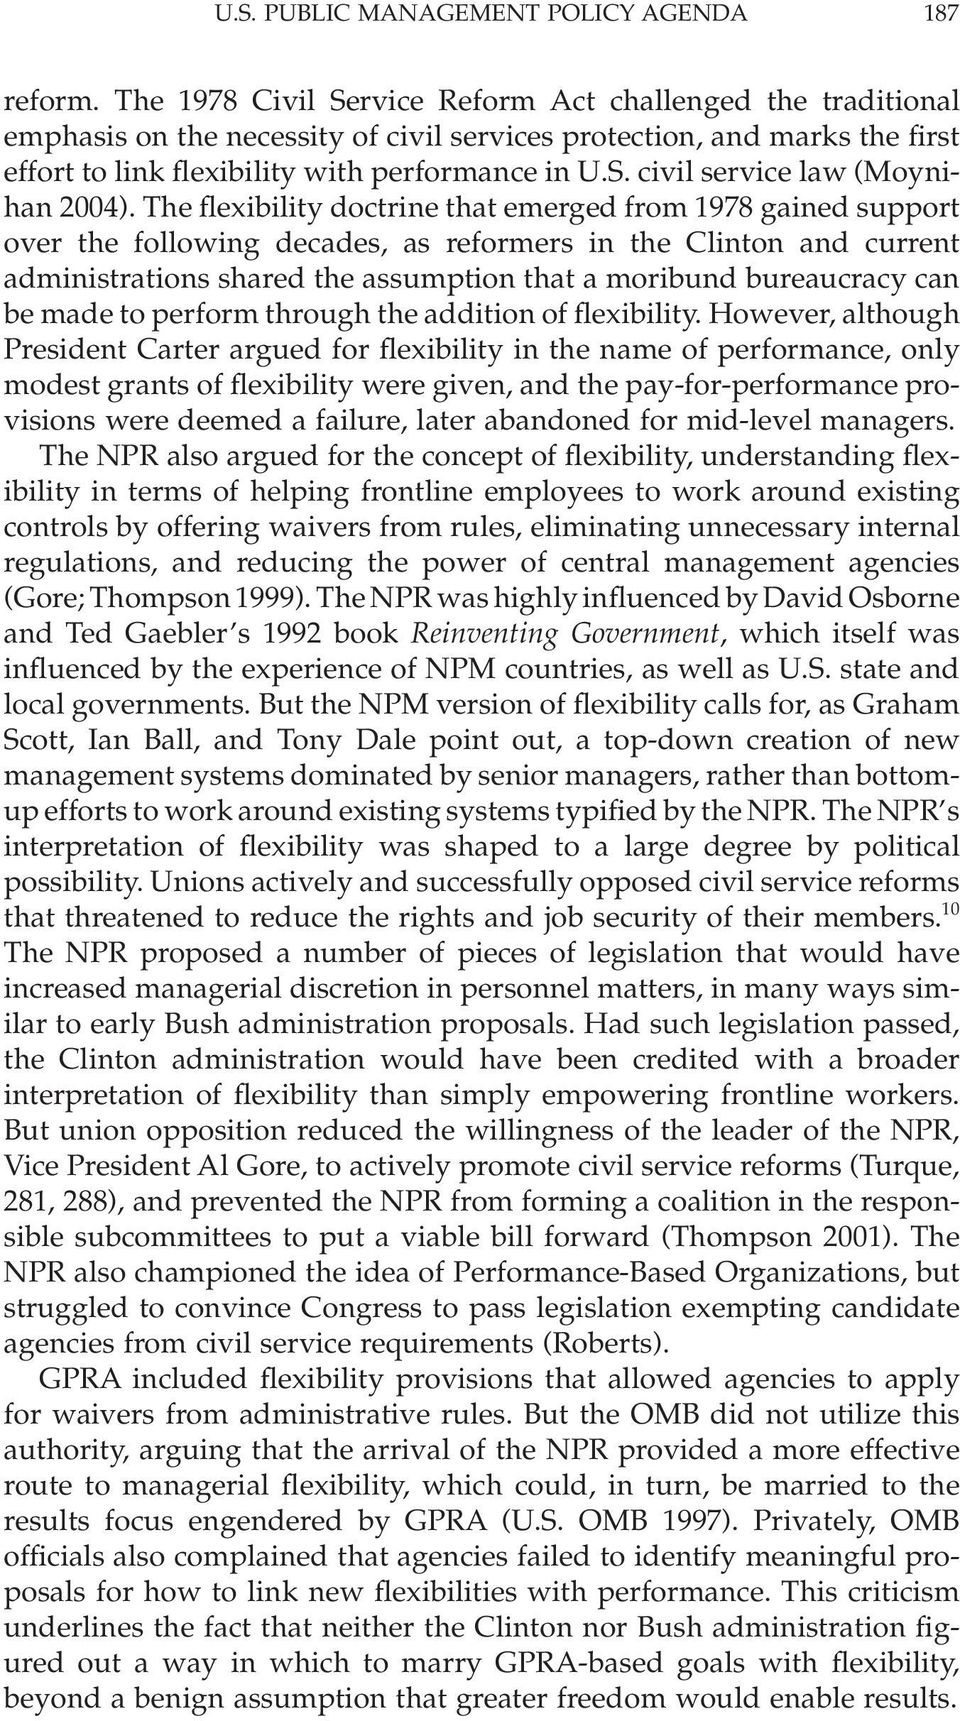 The flexibility doctrine that emerged from 1978 gained support over the following decades, as reformers in the Clinton and current administrations shared the assumption that a moribund bureaucracy